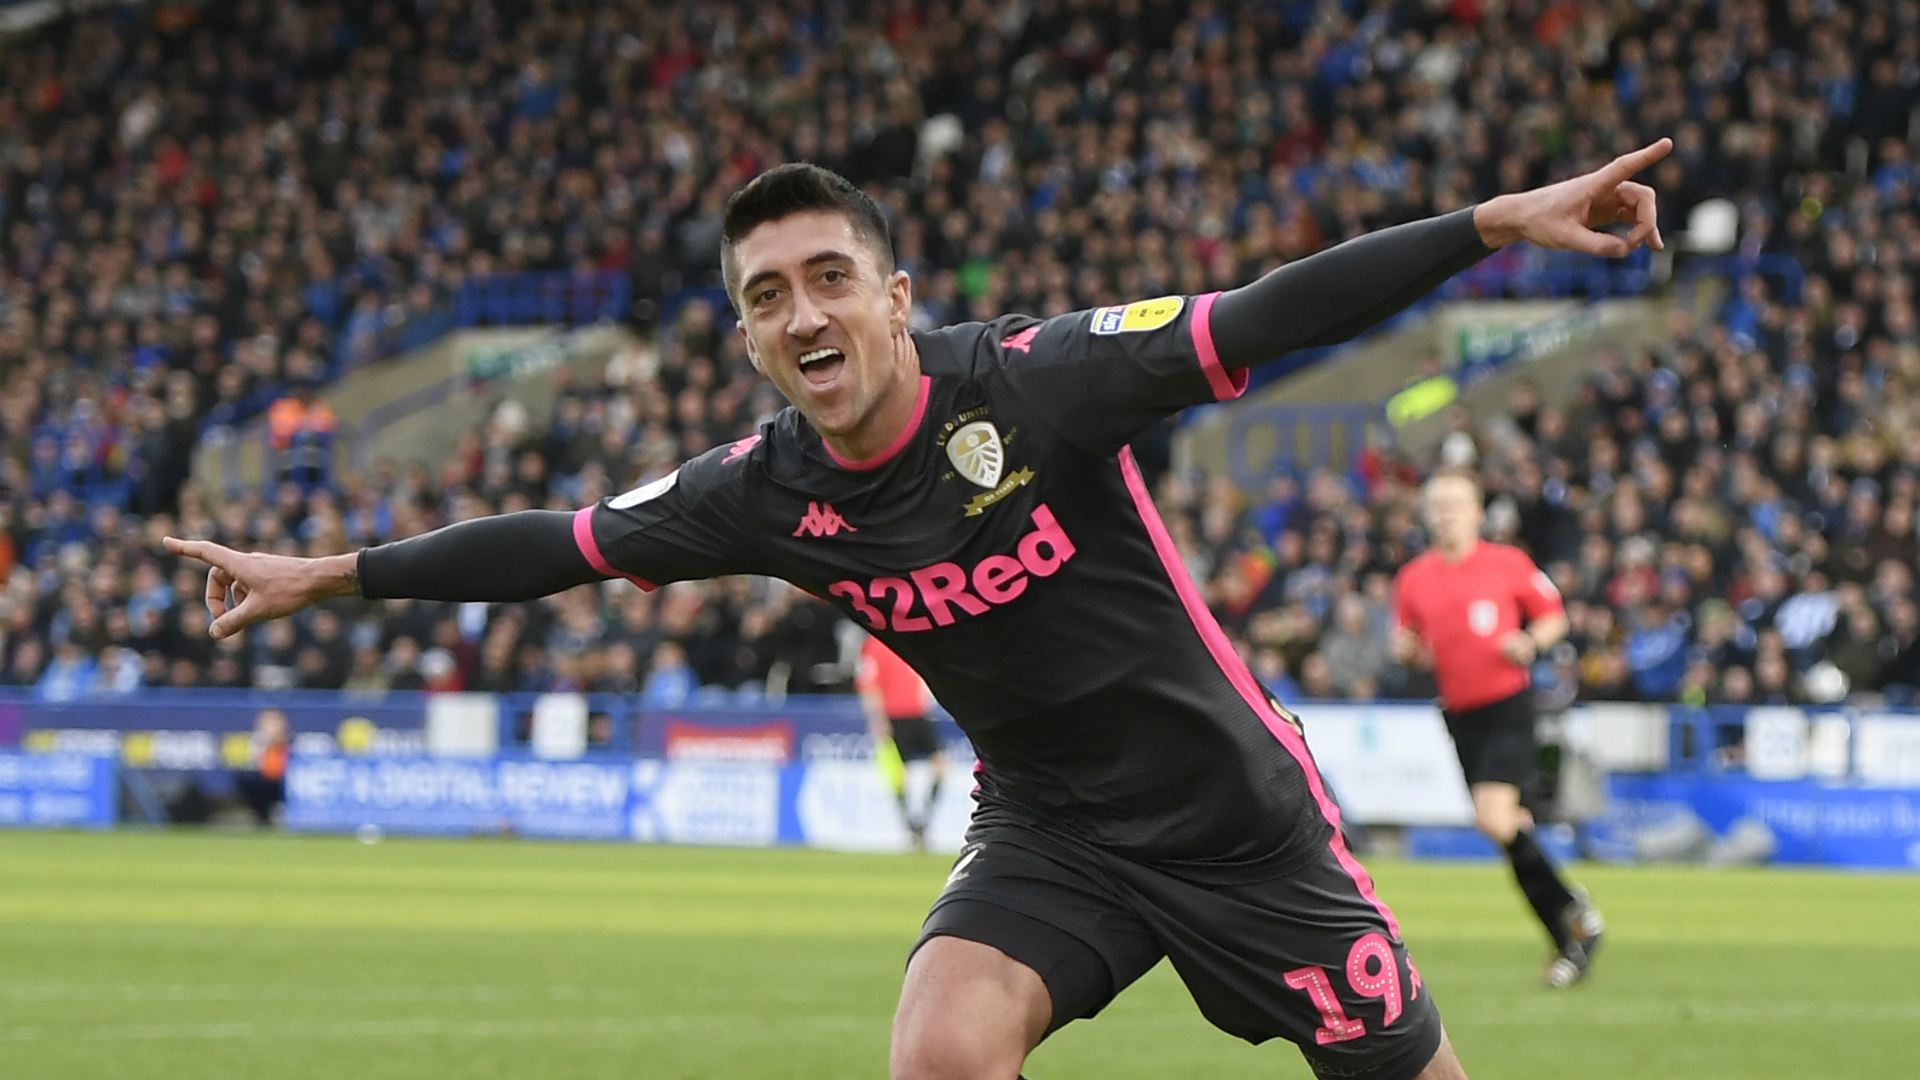 Championship: Leeds win again as Robins make ground with Fulham victory